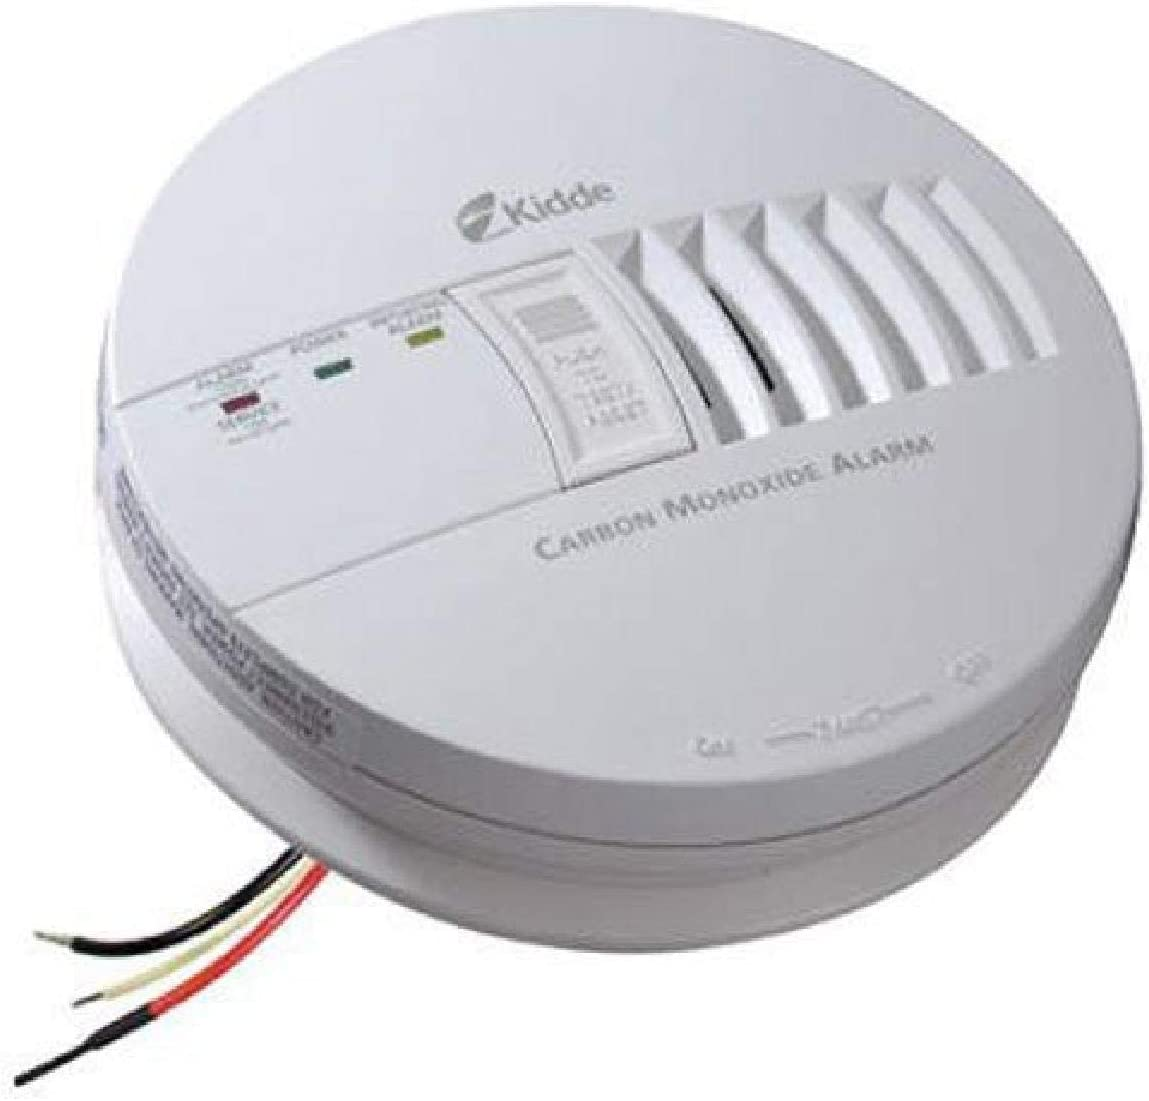 Kidde 21006406 Hardwire Carbon Monoxide Detector Alarm with Battery Backup, Interconnectable Model KN-COB-IC